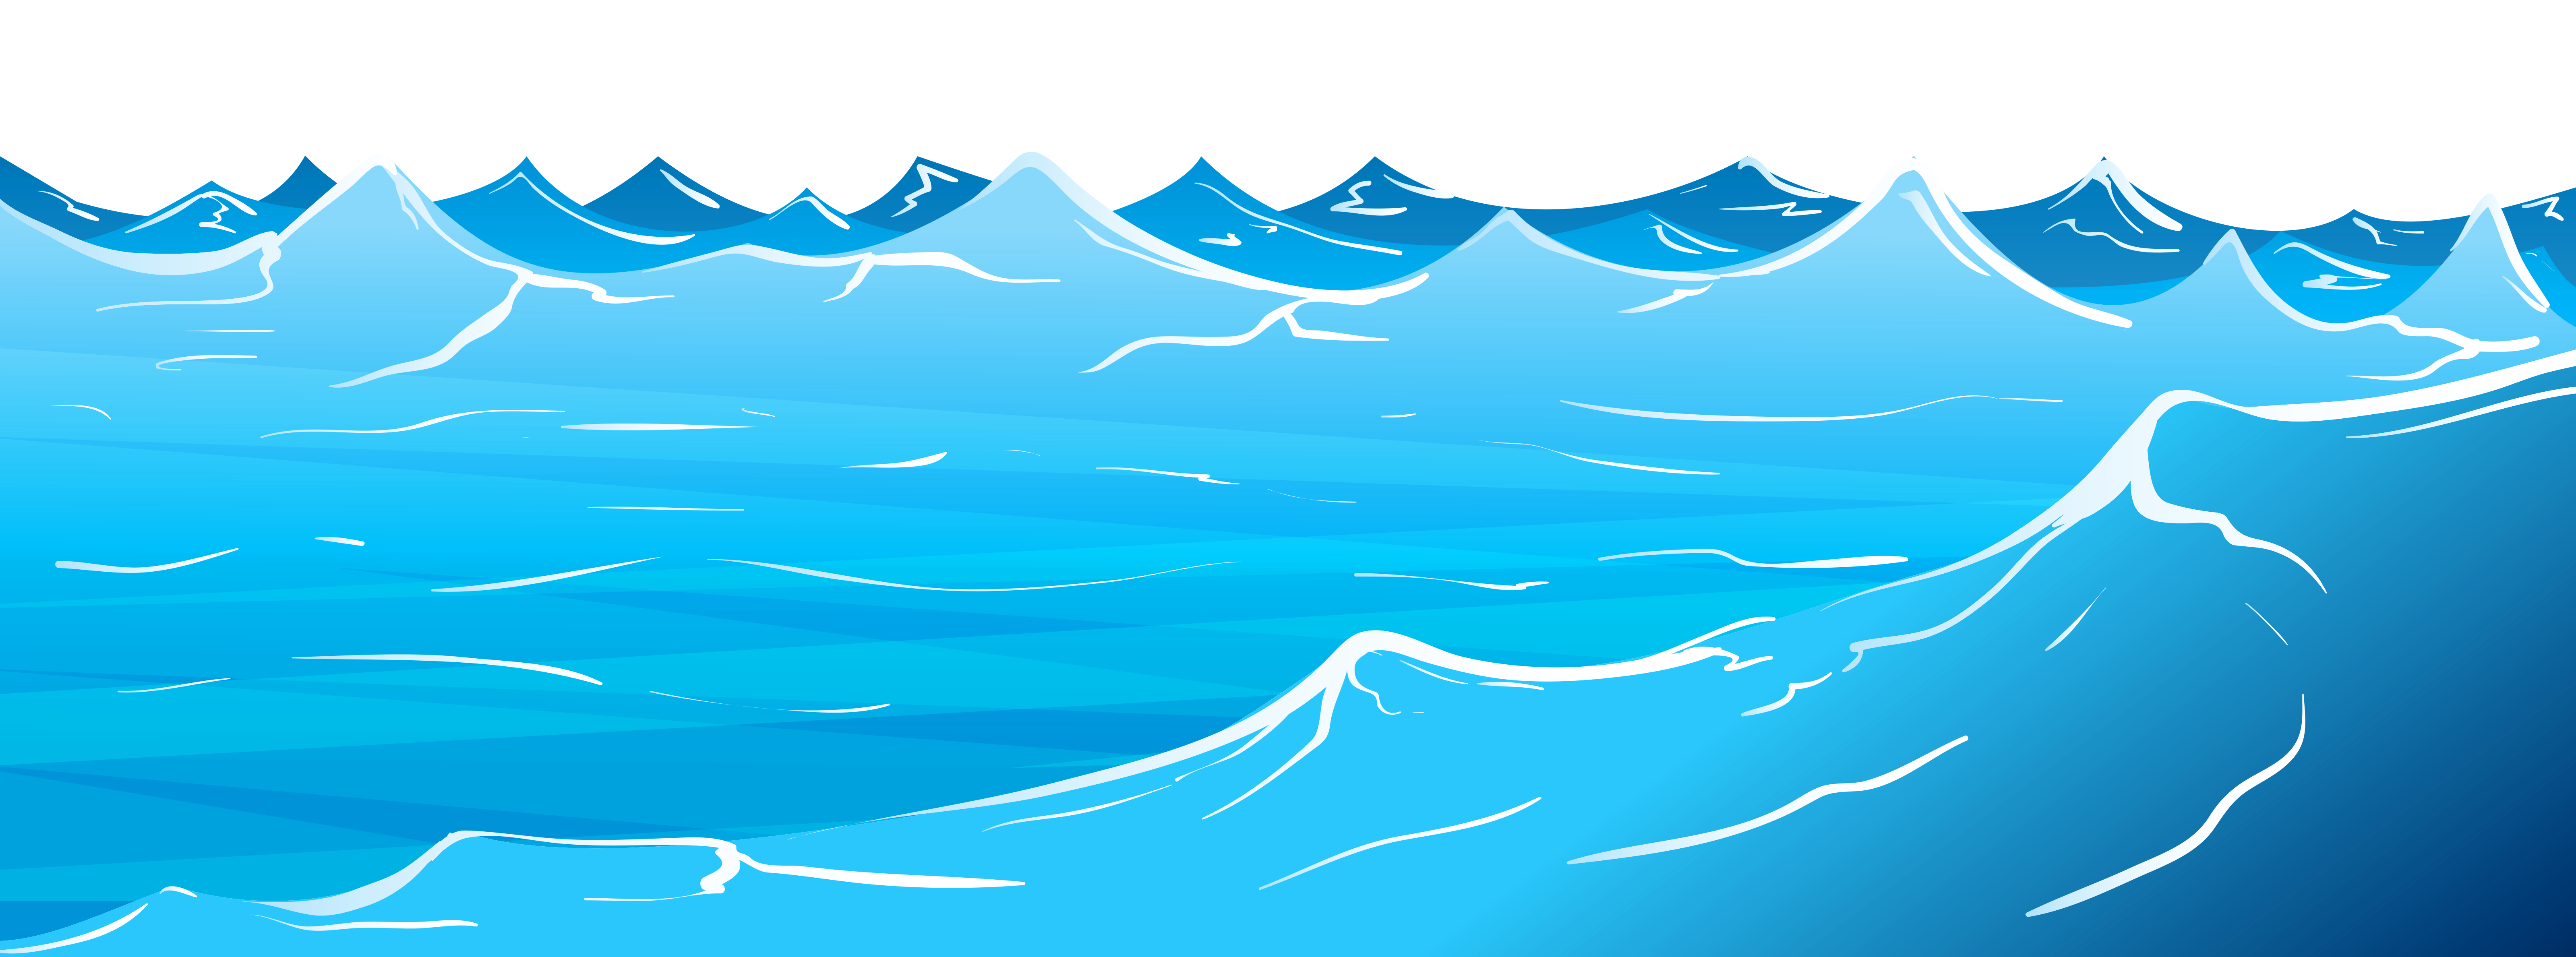 28  Collection of Ocean Clipart | High quality, free cliparts . hdclipartall.com png